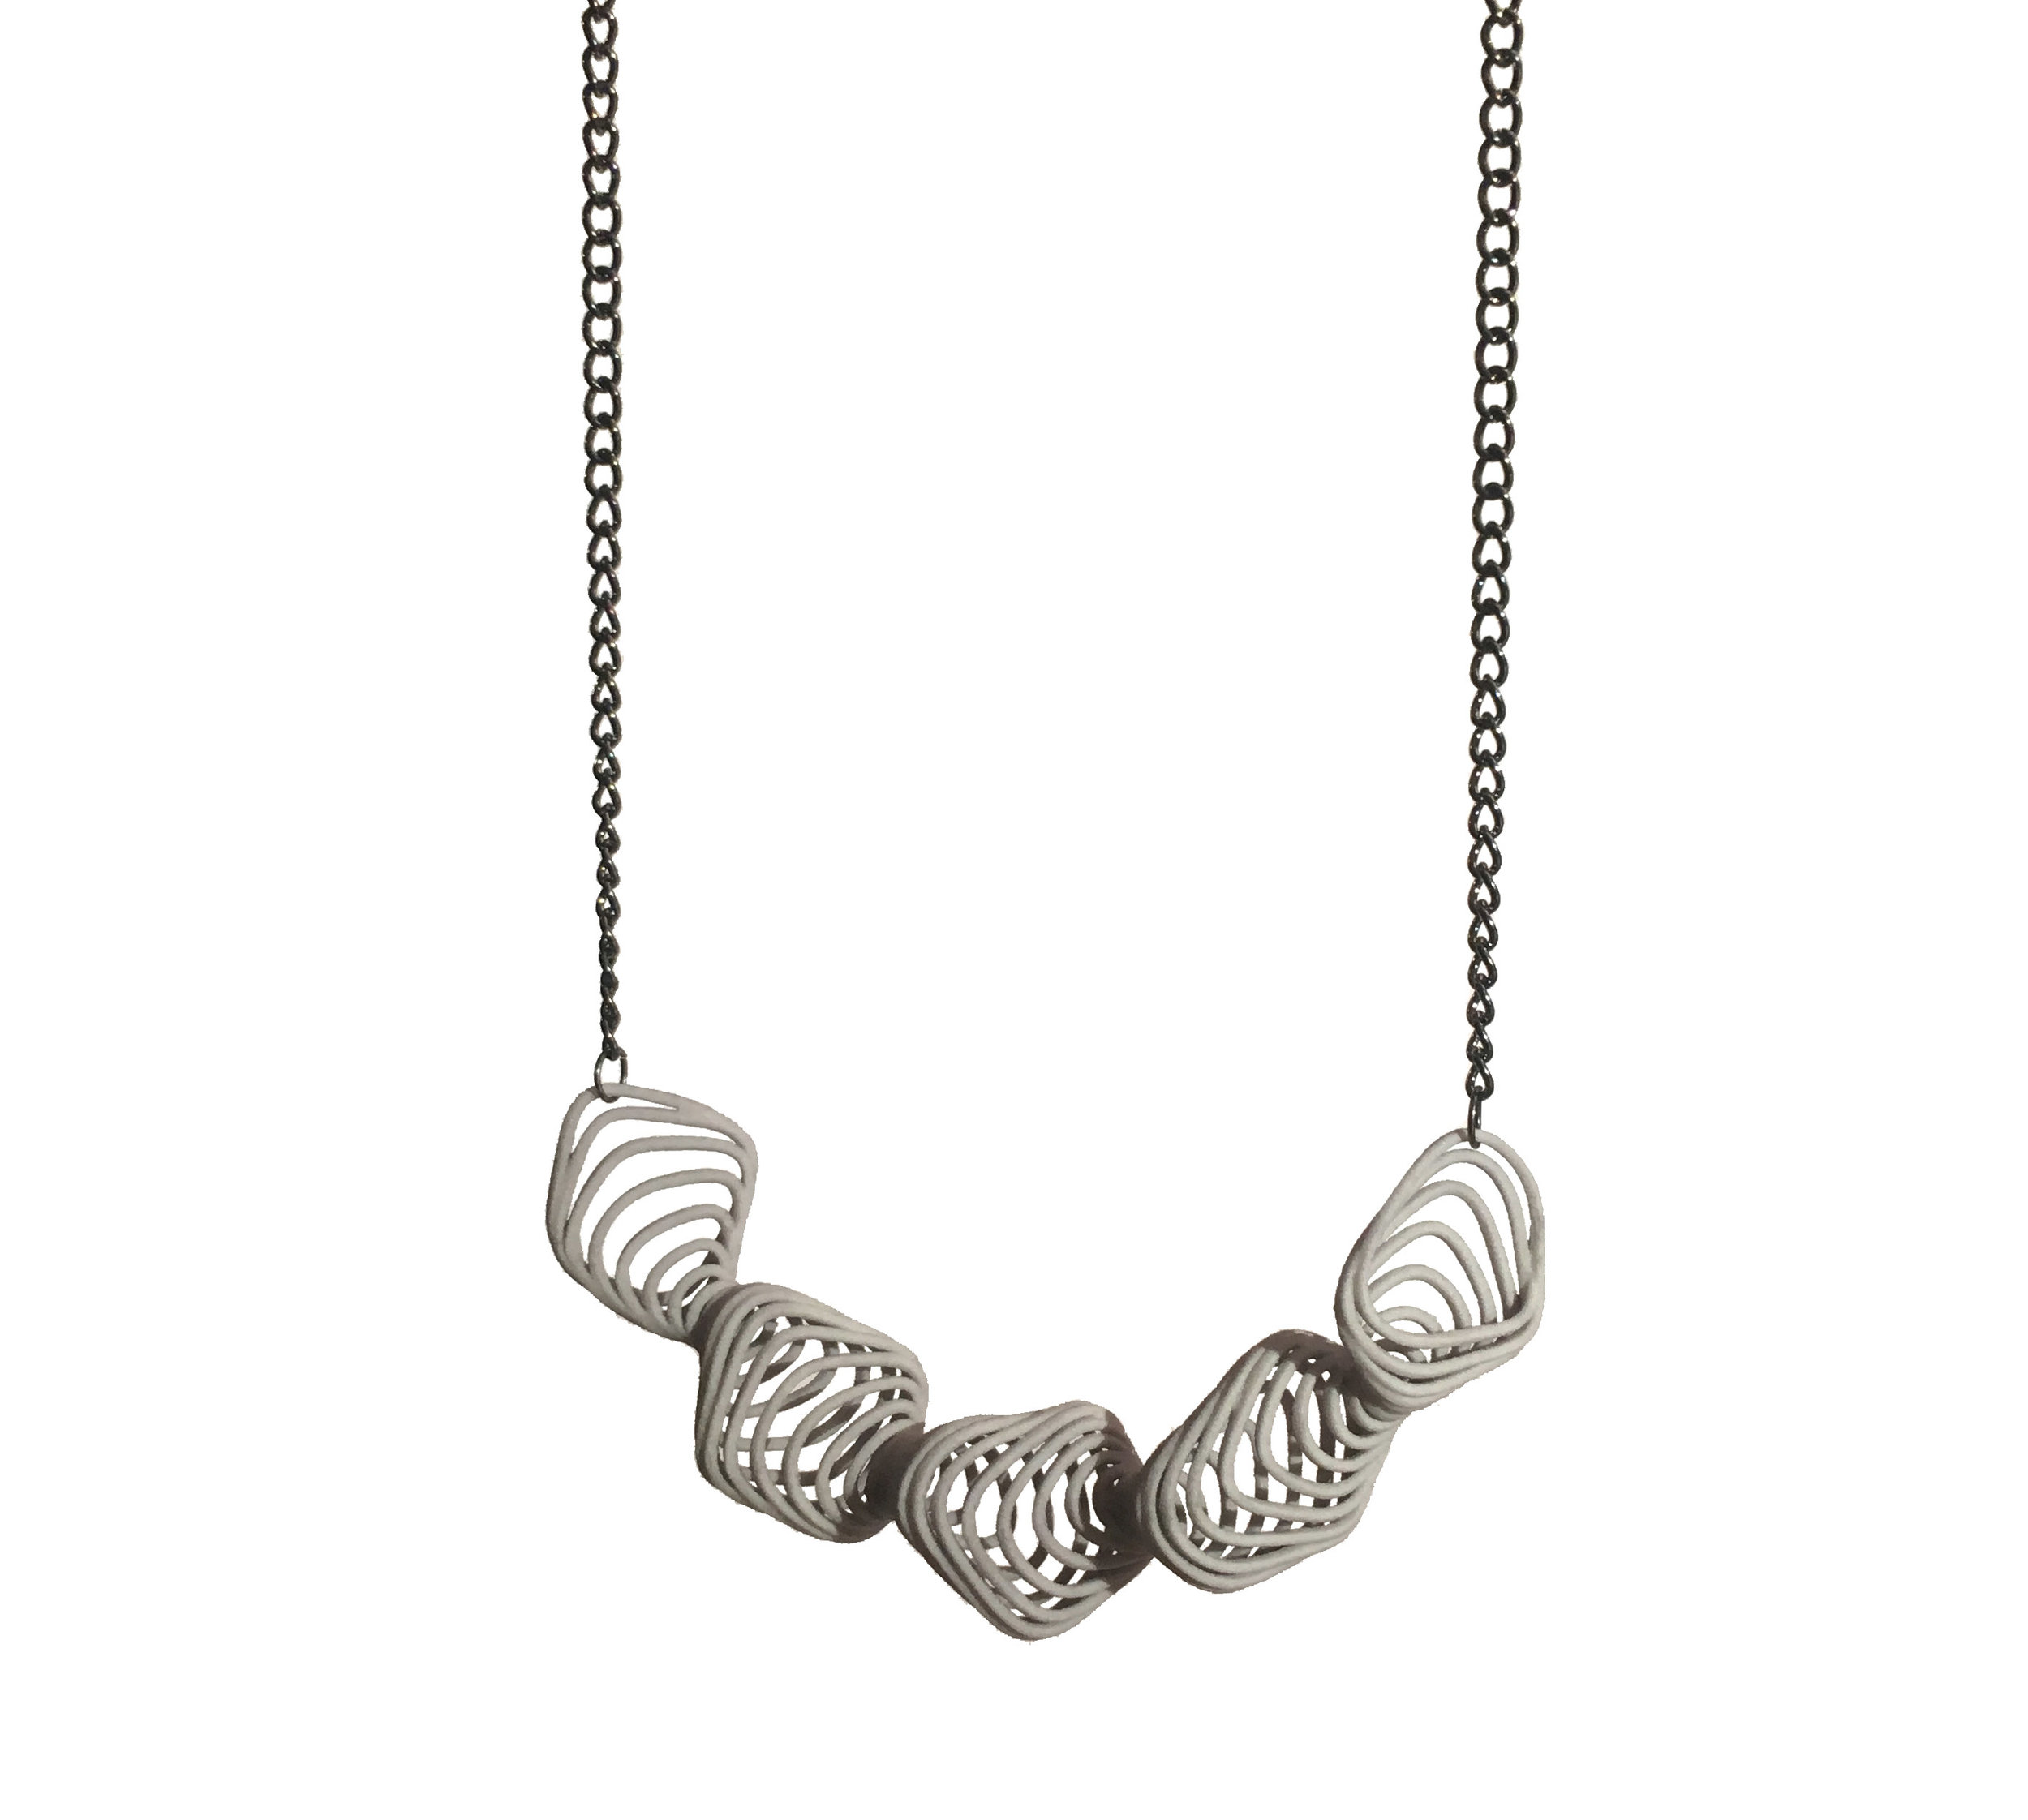 Oscillate Necklace   9100: In Nylon $18  9190: In Steel $80